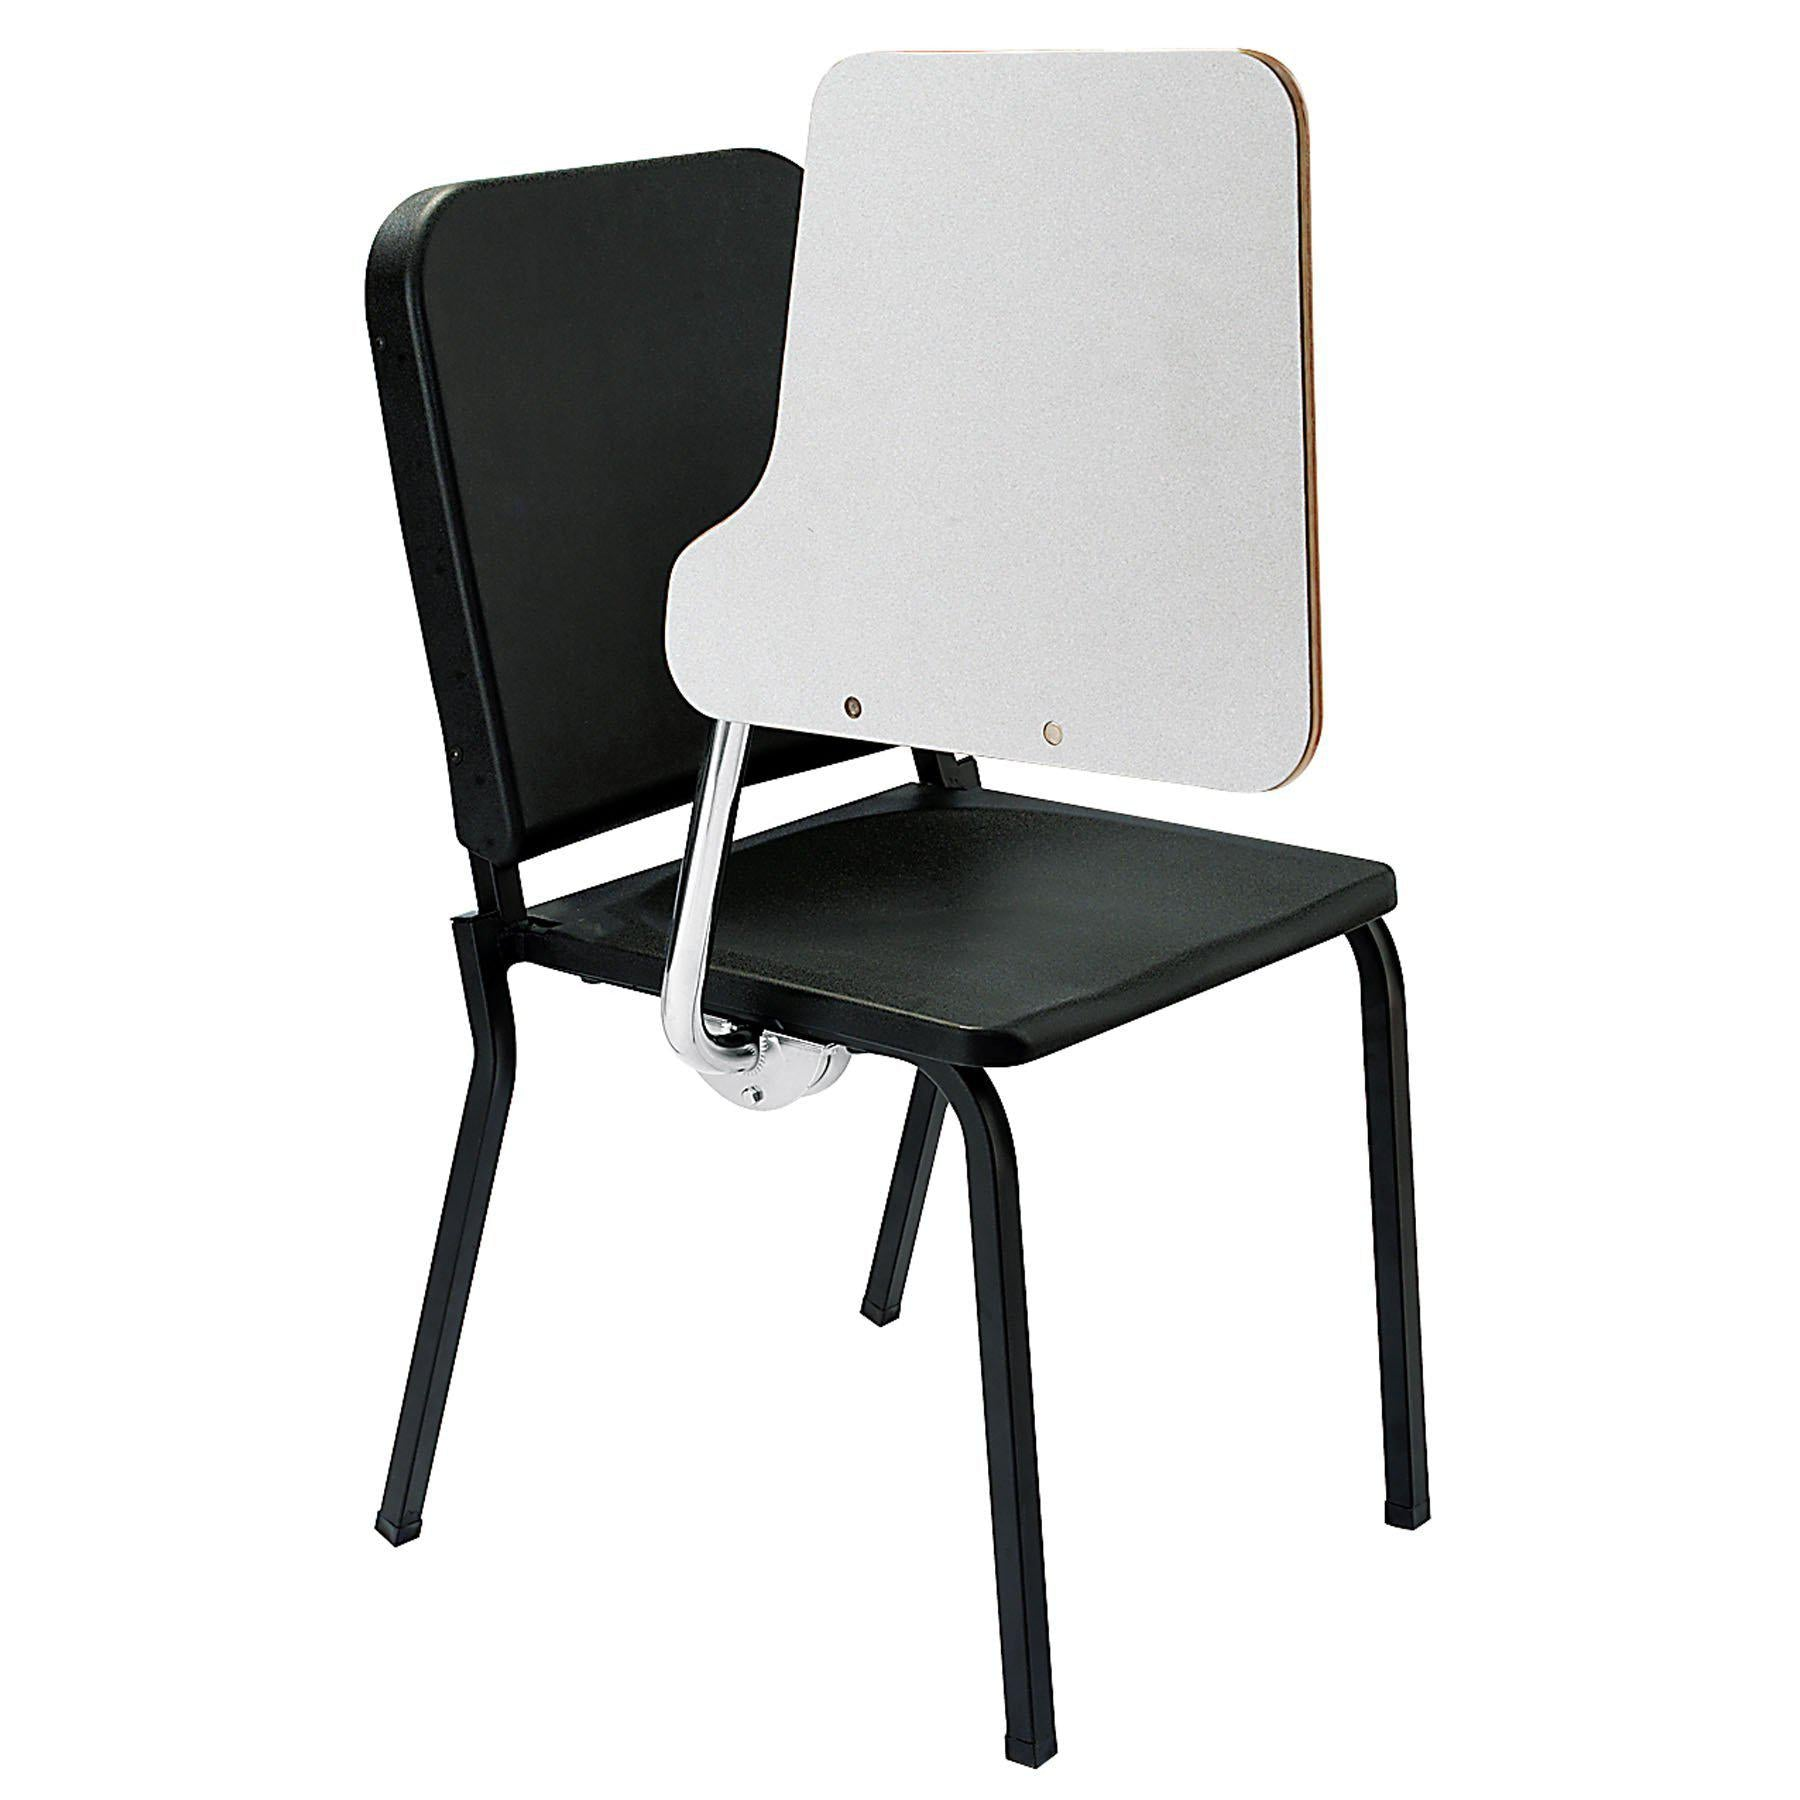 Melody Music Stack Chair With Black Chair and White Tablet Arm-Chairs-Left-